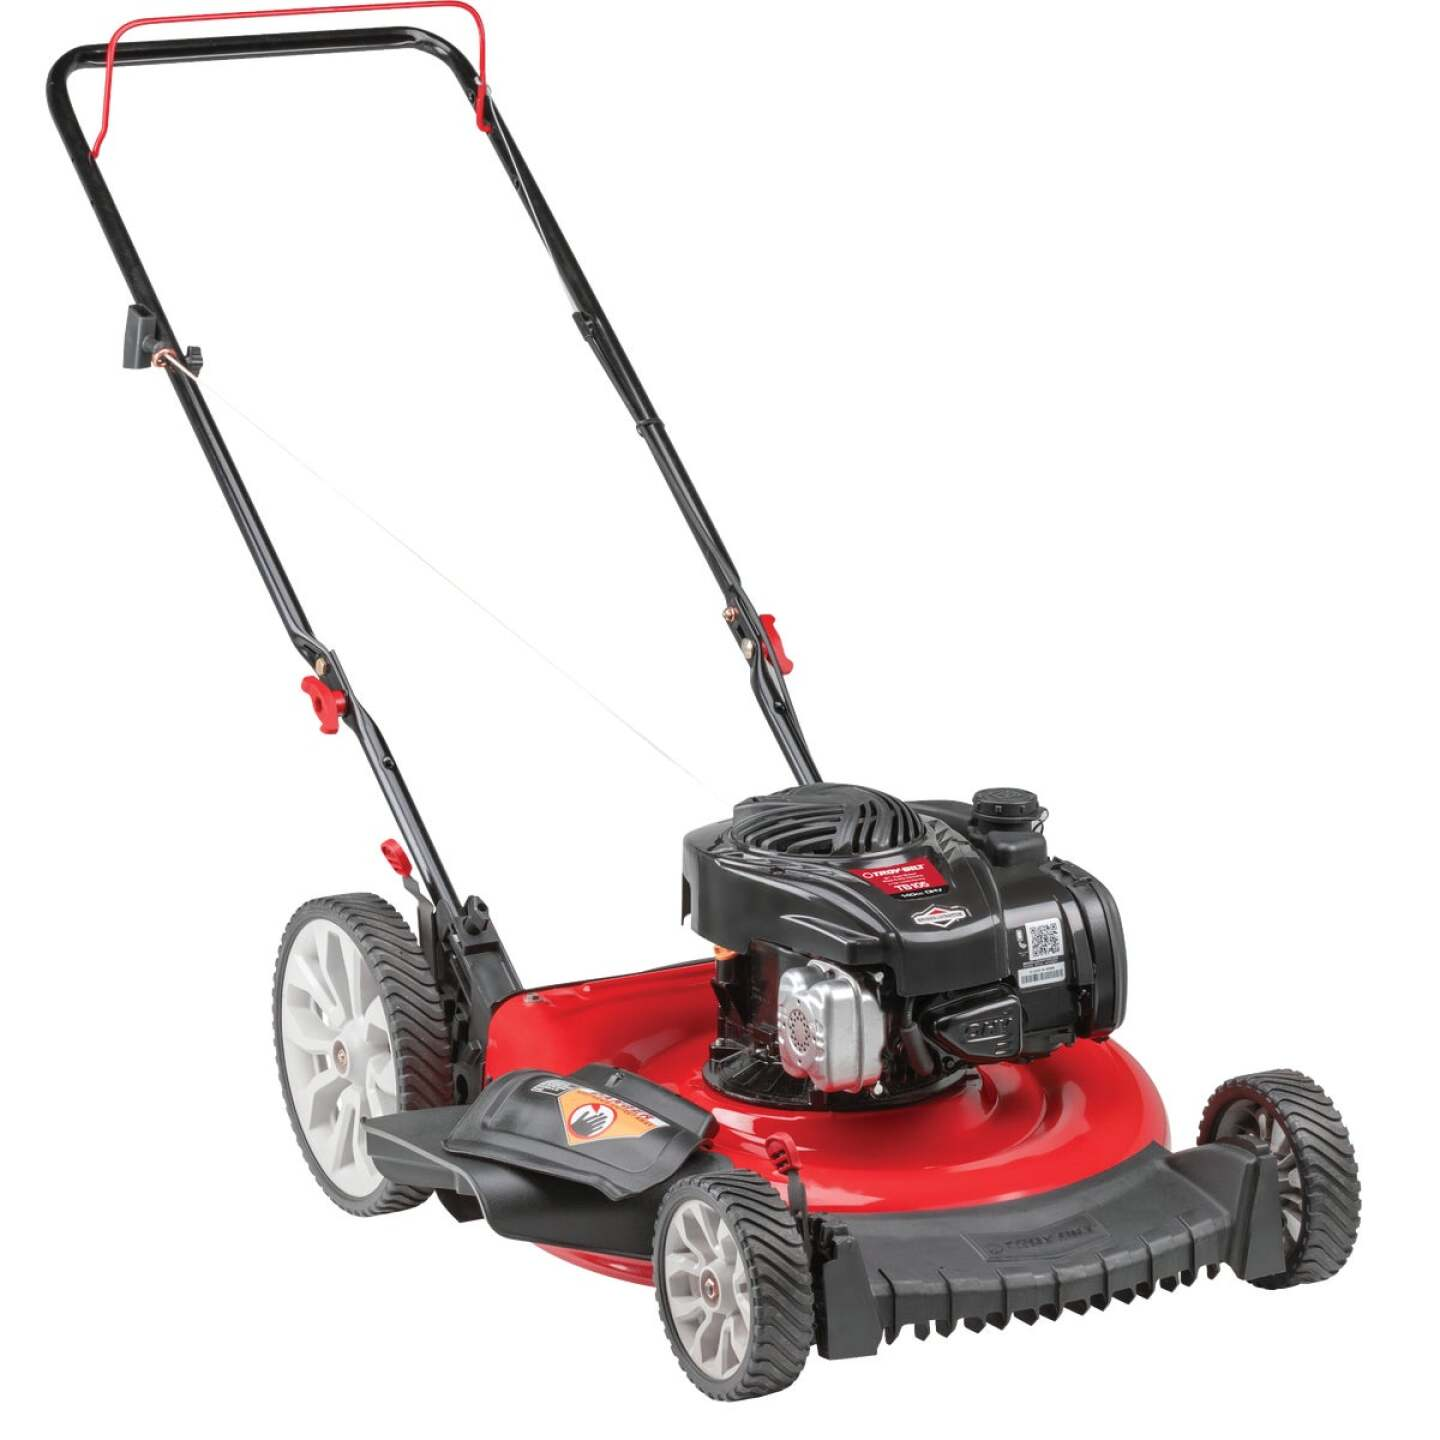 Troy-Bilt TB105 21 In. 140cc High Wheel Push Gas Lawn Mower Image 2